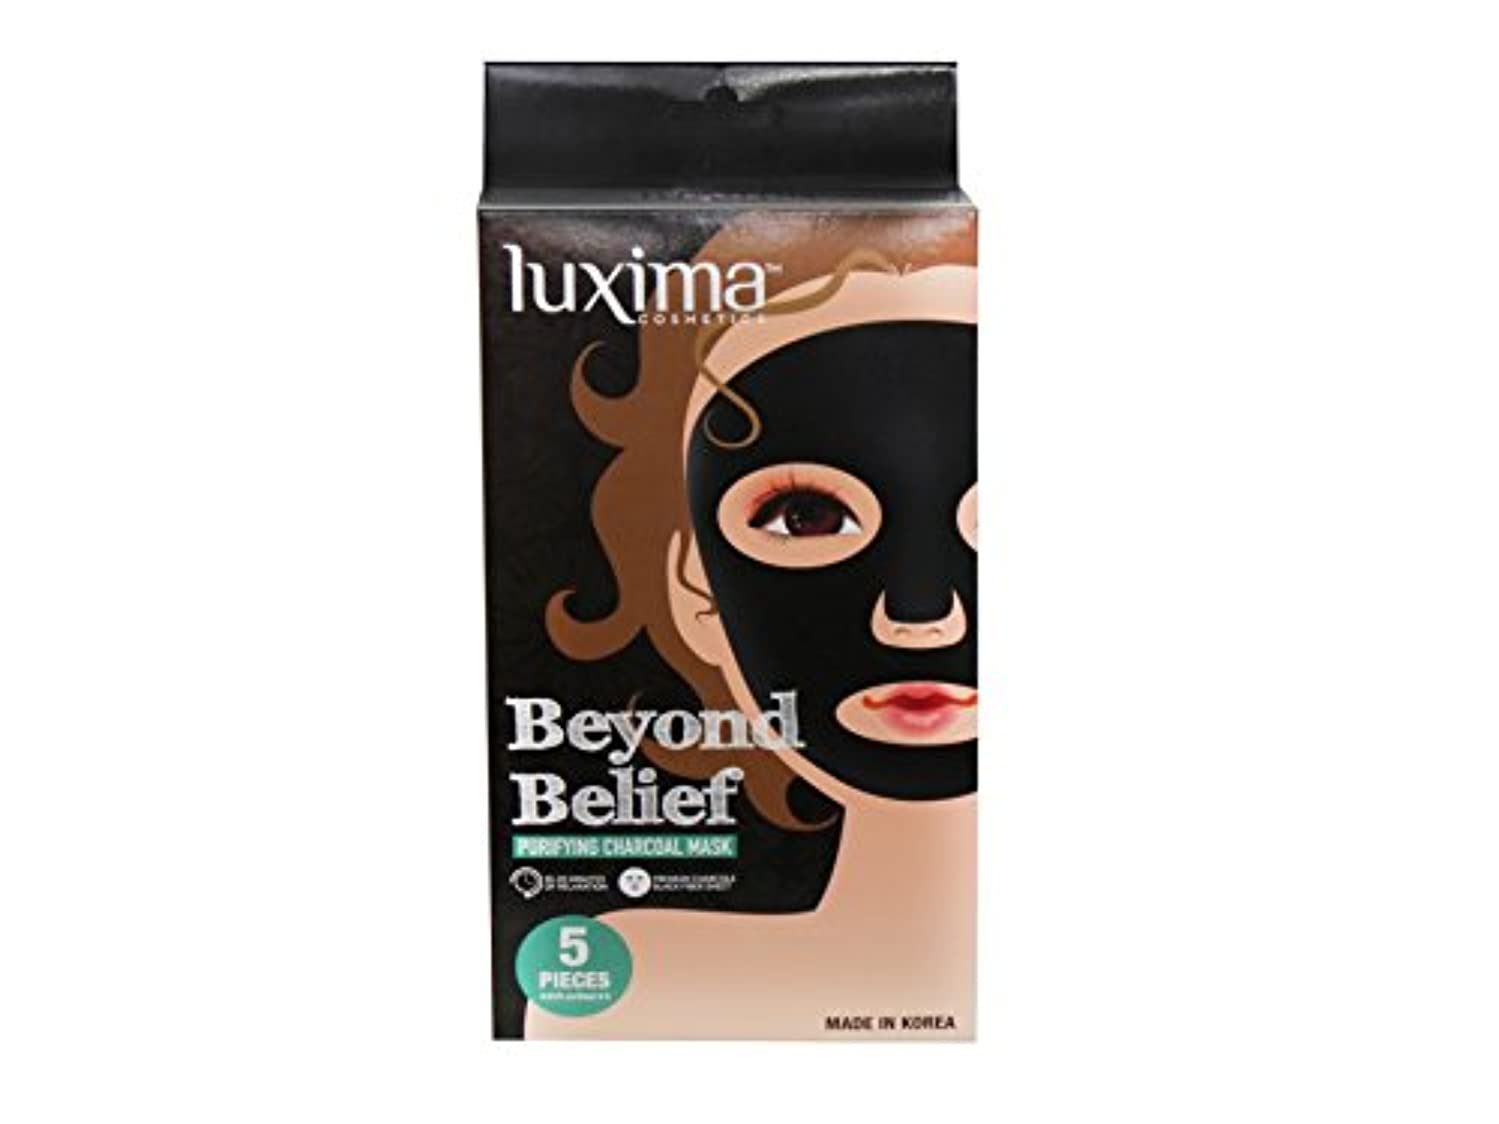 重要フルーティー休憩LUXIMA Beyond Belief Purifying Charcoal Mask, Pack of 5 (並行輸入品)